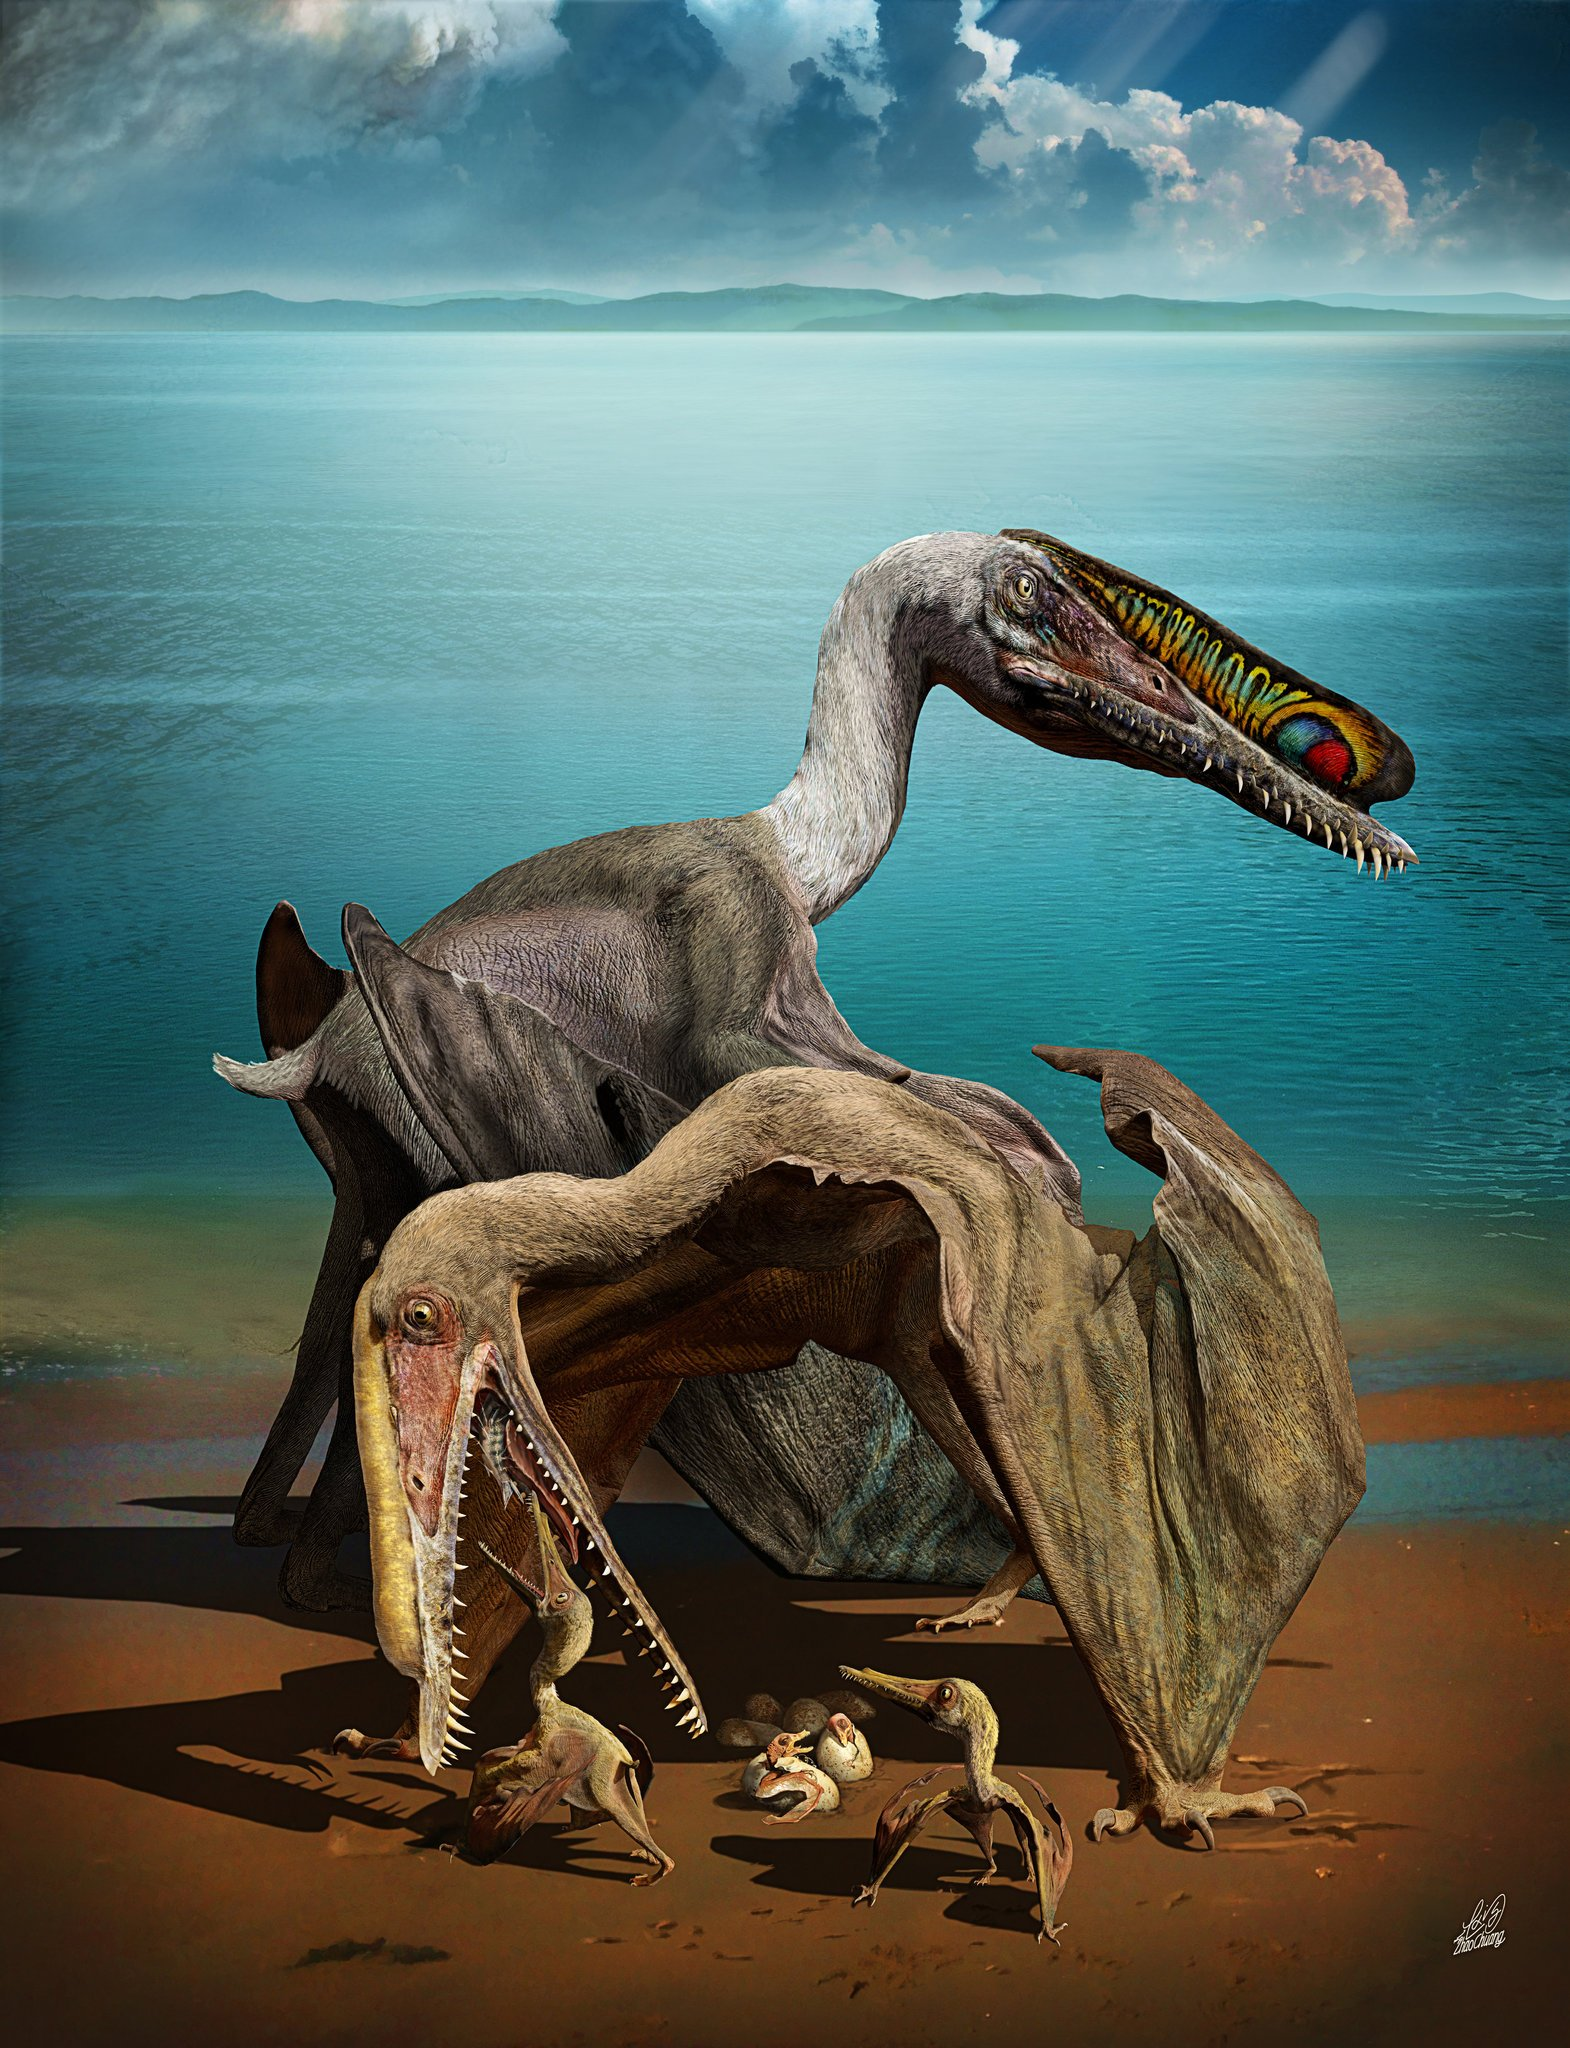 200 pterosaur eggs discovered china, 200 dinosaur eggs china, pterosaur  eggs china gobi, largest pterosaur egg collection ever found